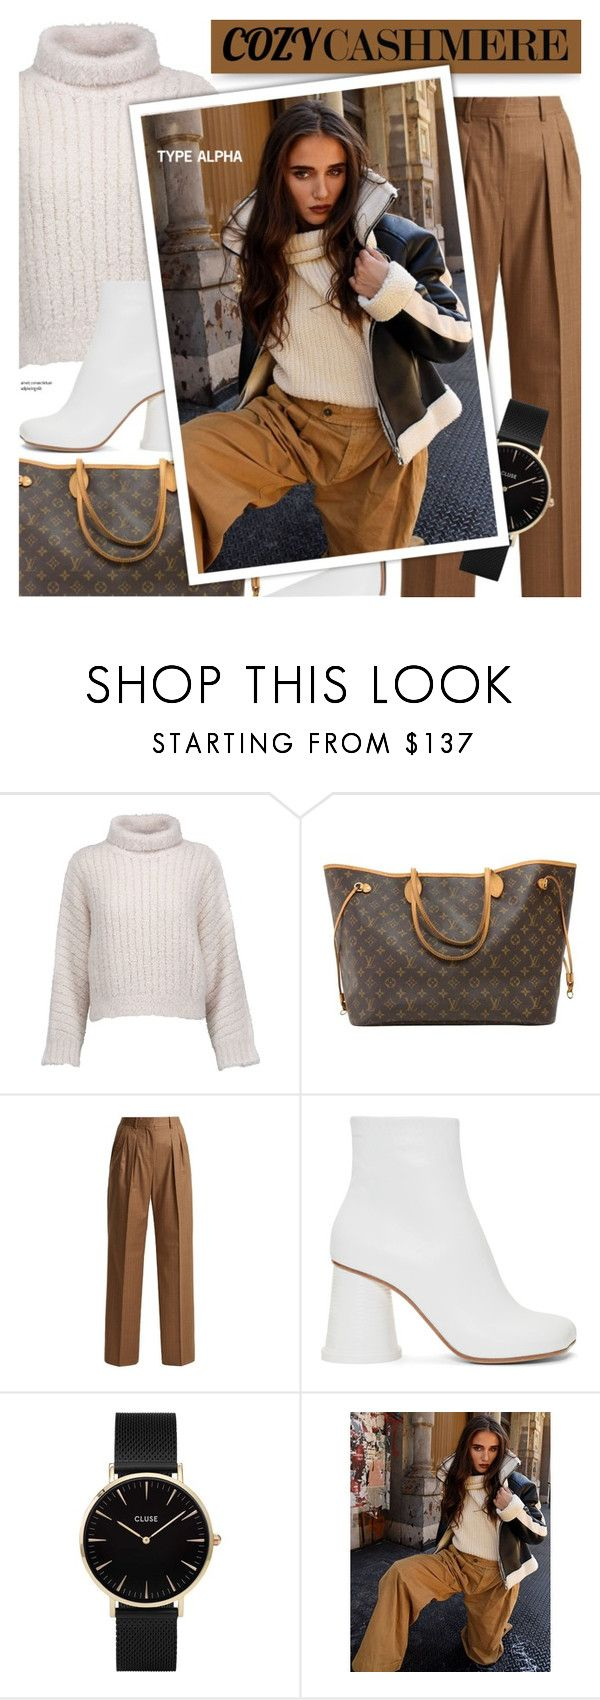 """""""Cozy street style - Faux Shearling Bomber Jacket"""" by typealpha ❤ liked on Polyvore featuring Brunello Cucinelli, Louis Vuitton, MaxMara, MM6 Maison Margiela and CLUSE"""